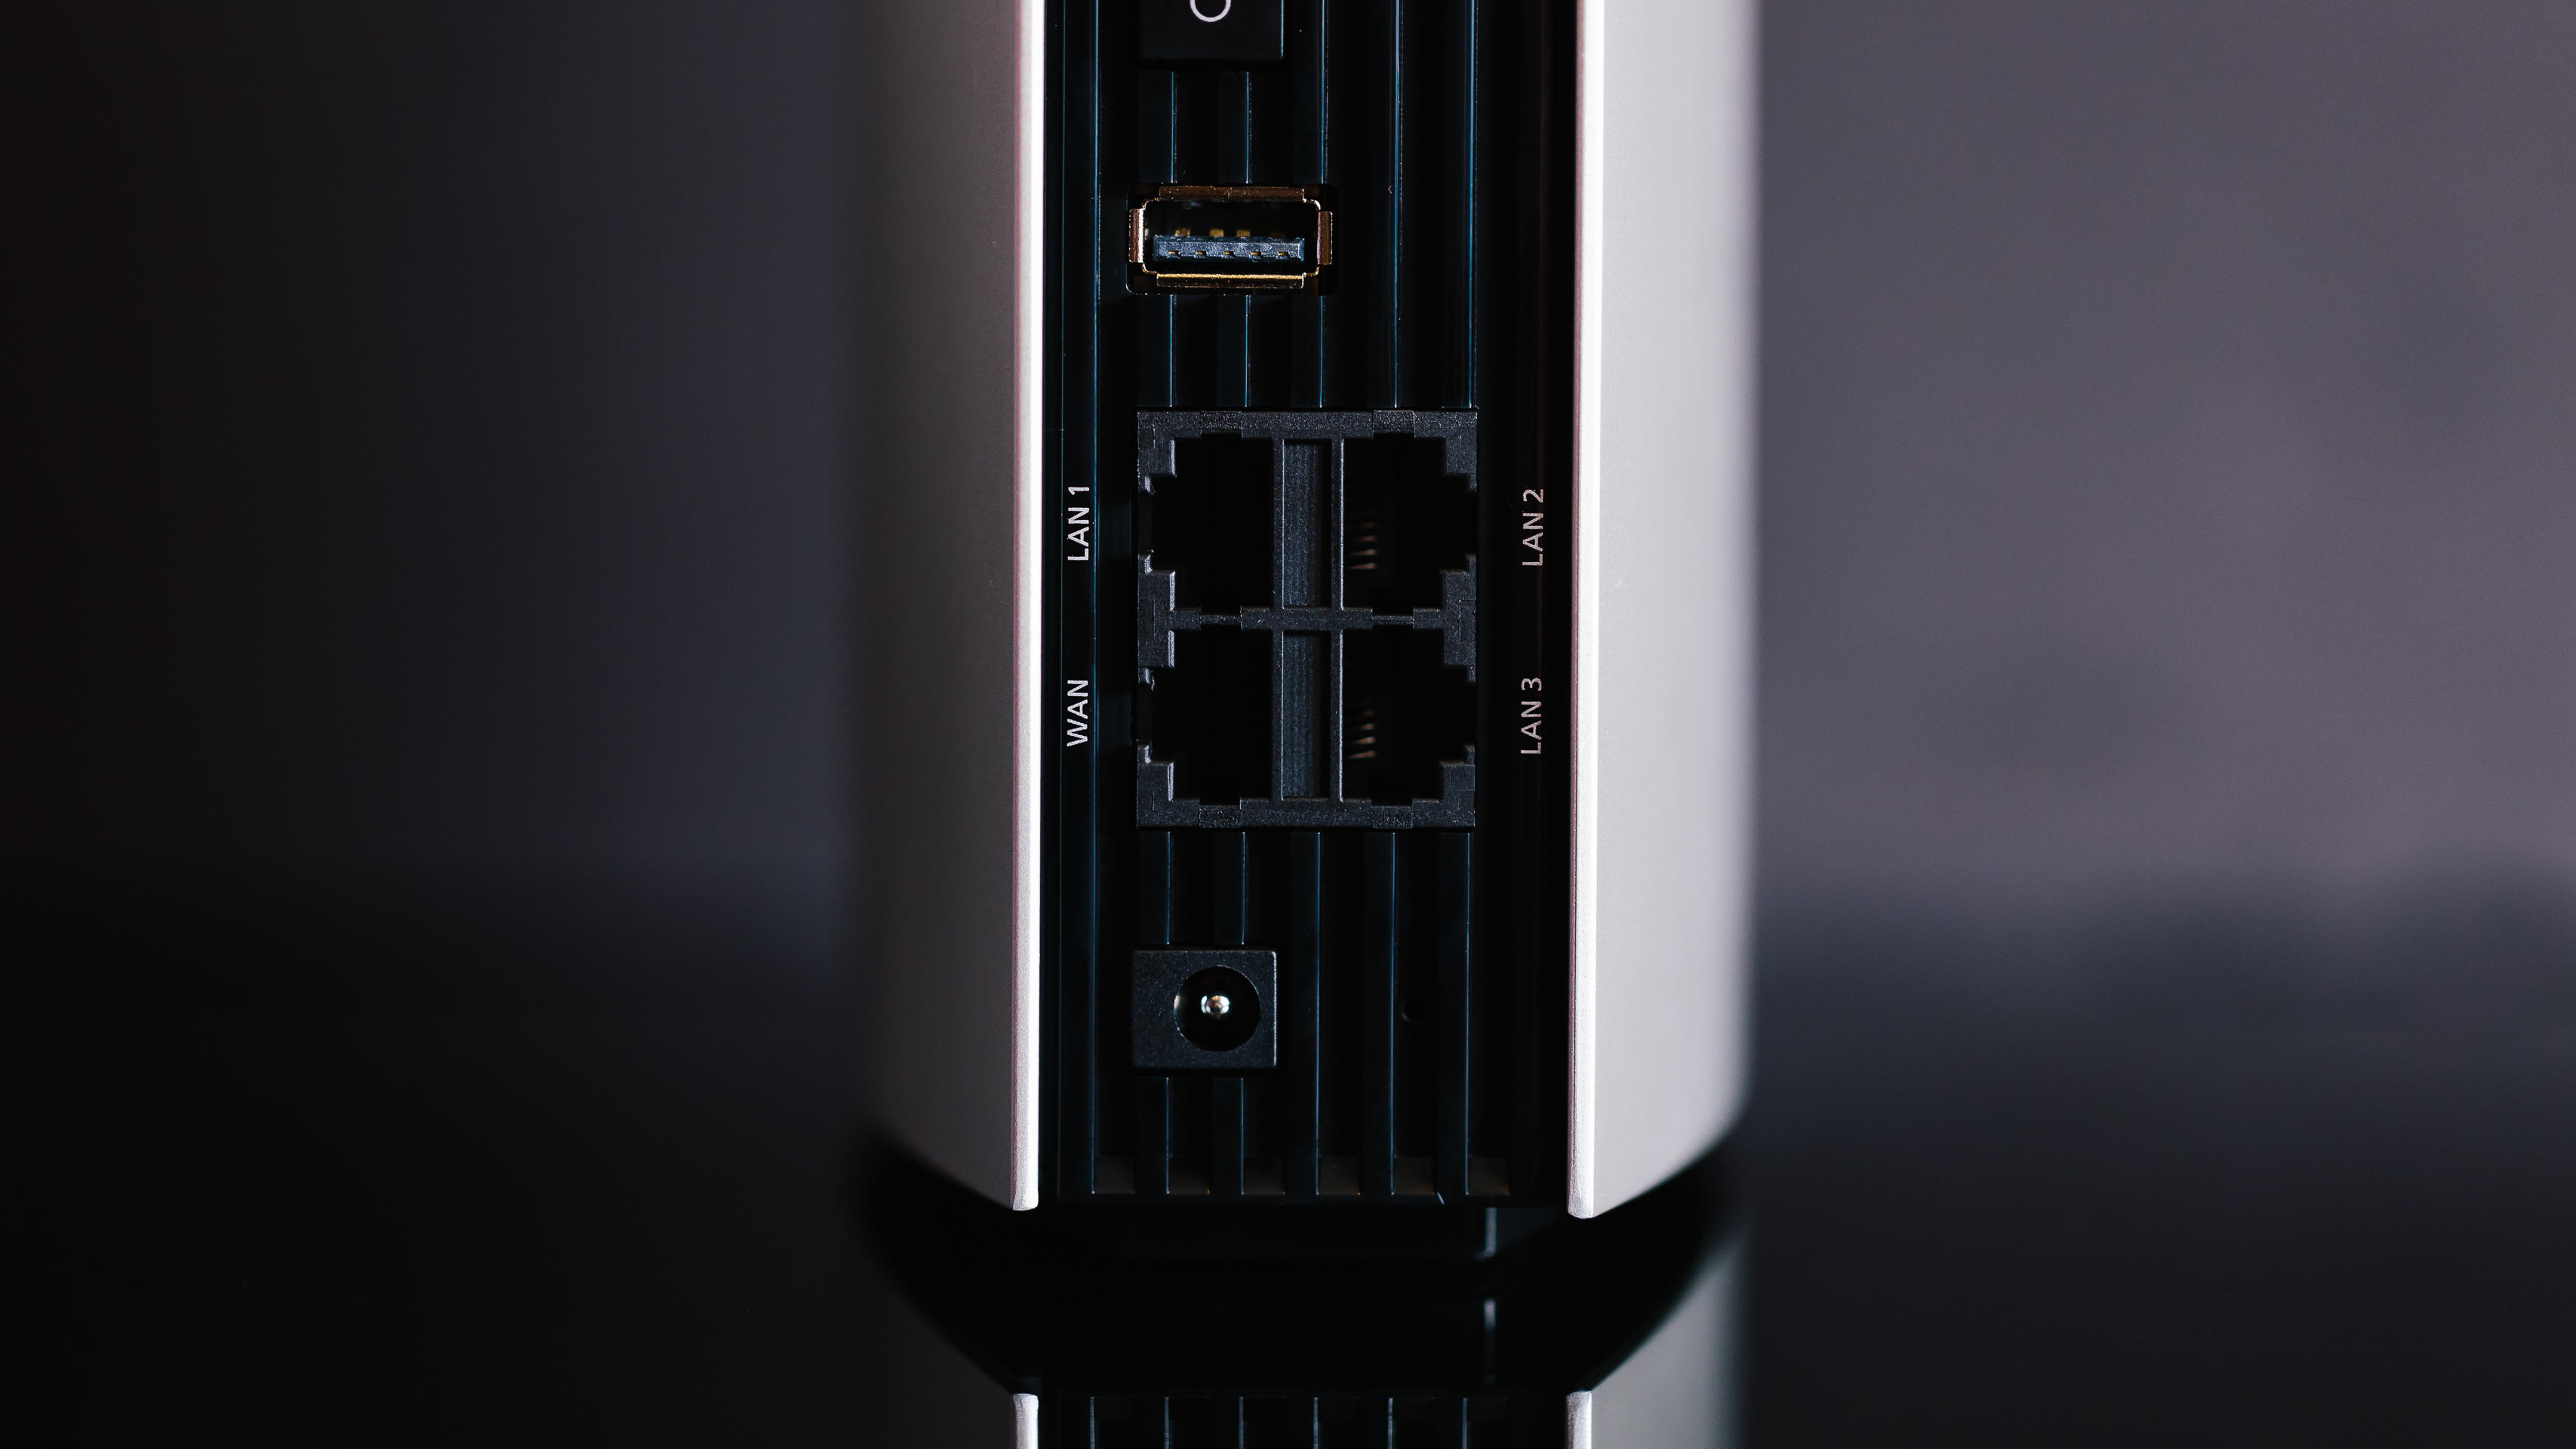 phicomm-router-product-photos-2